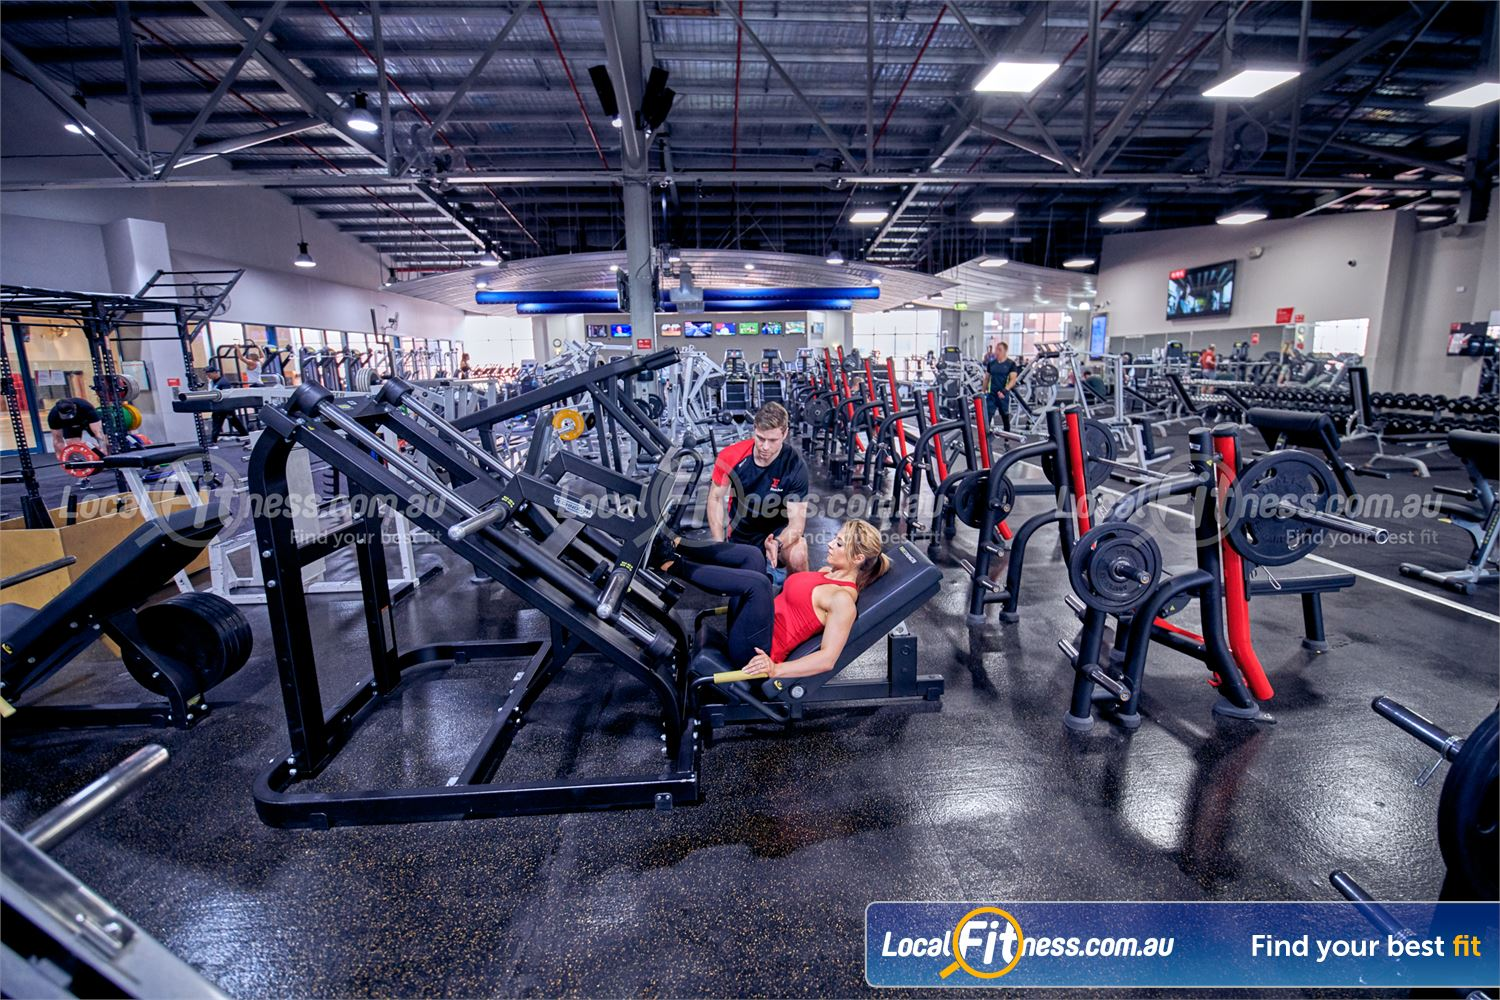 Fitness First Platinum Near South Yarra Our Richmond gym includes multiple heavy duty leg presses.